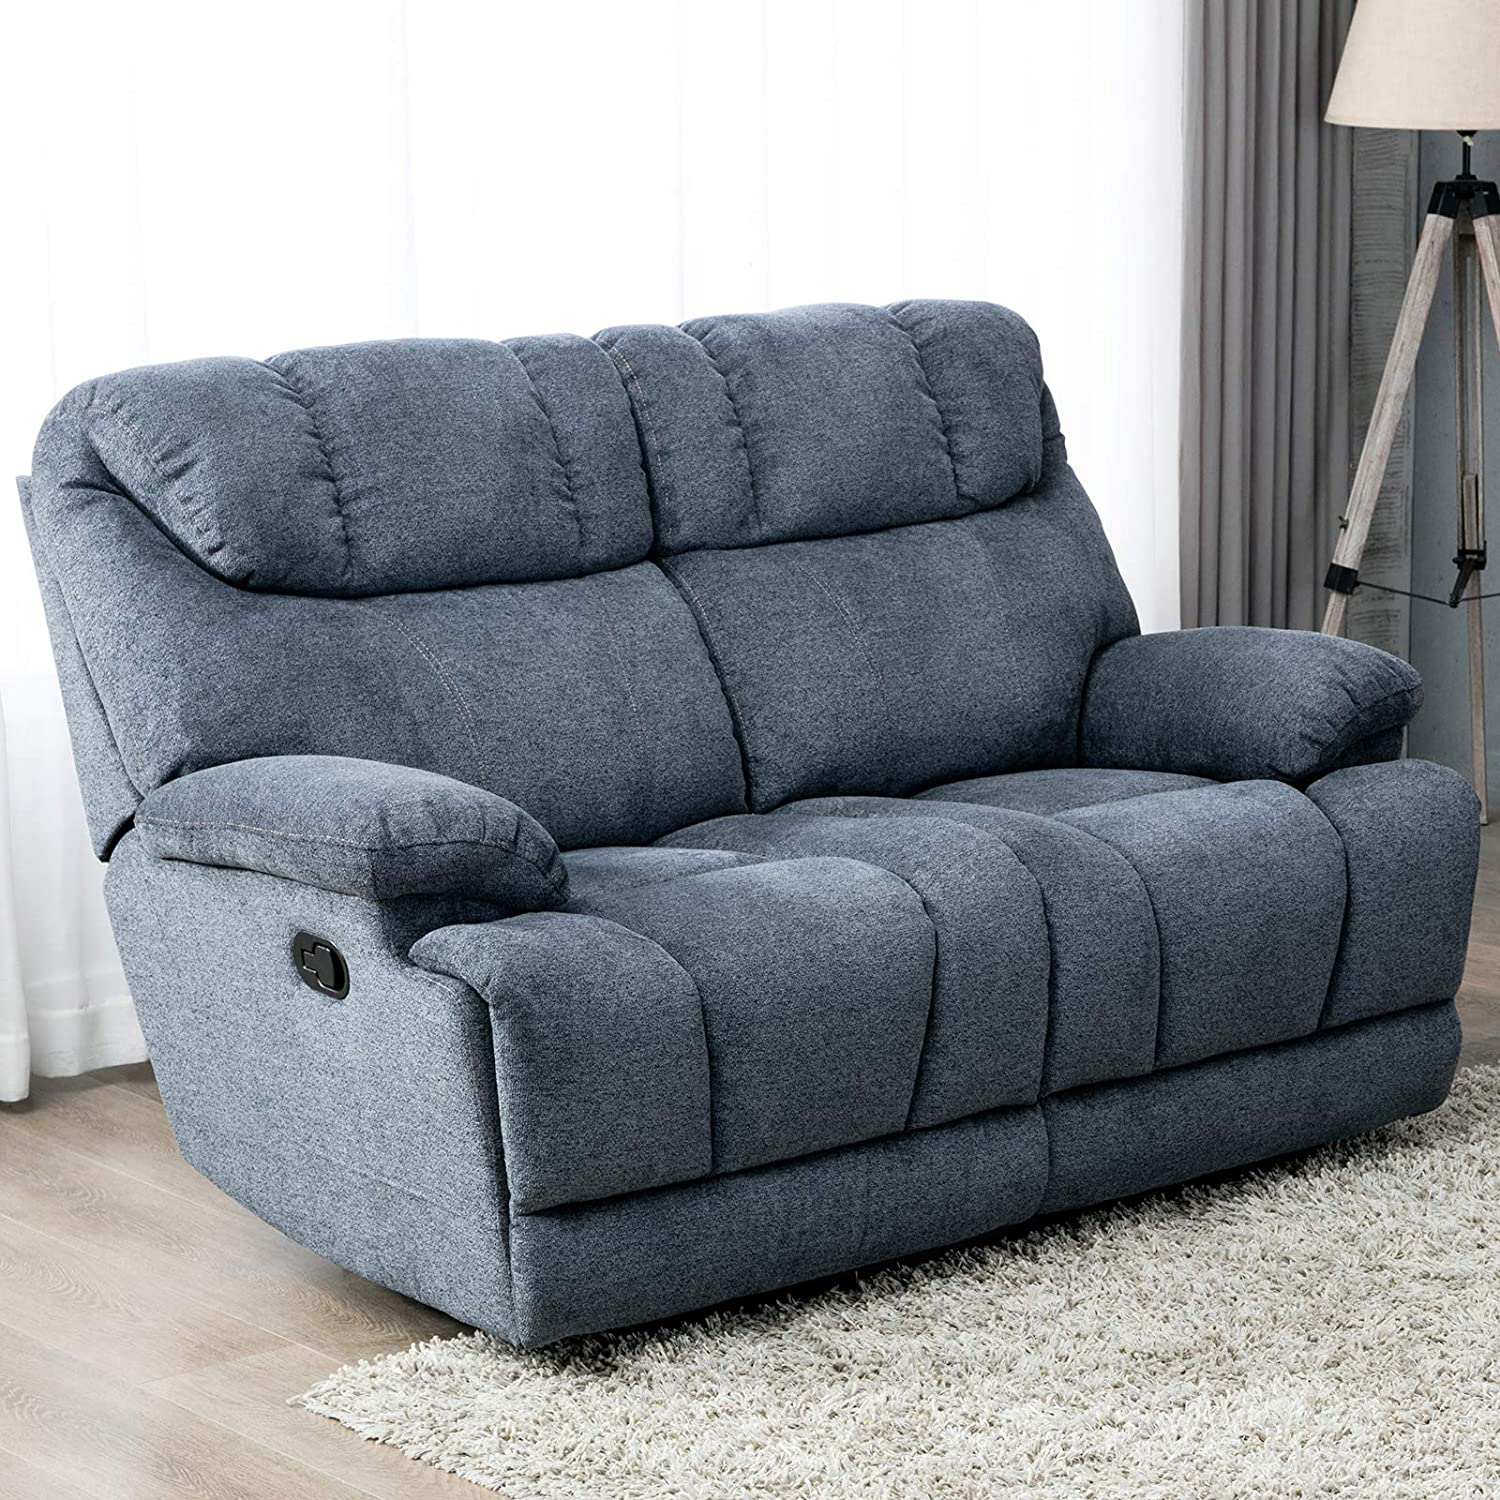 CANMOV Reclining Loveseat, Soft Warm Microfiber Velvet RV Living Room  Chair, Manual Recliner Sofa (2 Seater) with Padded Headrest and Back, Blue